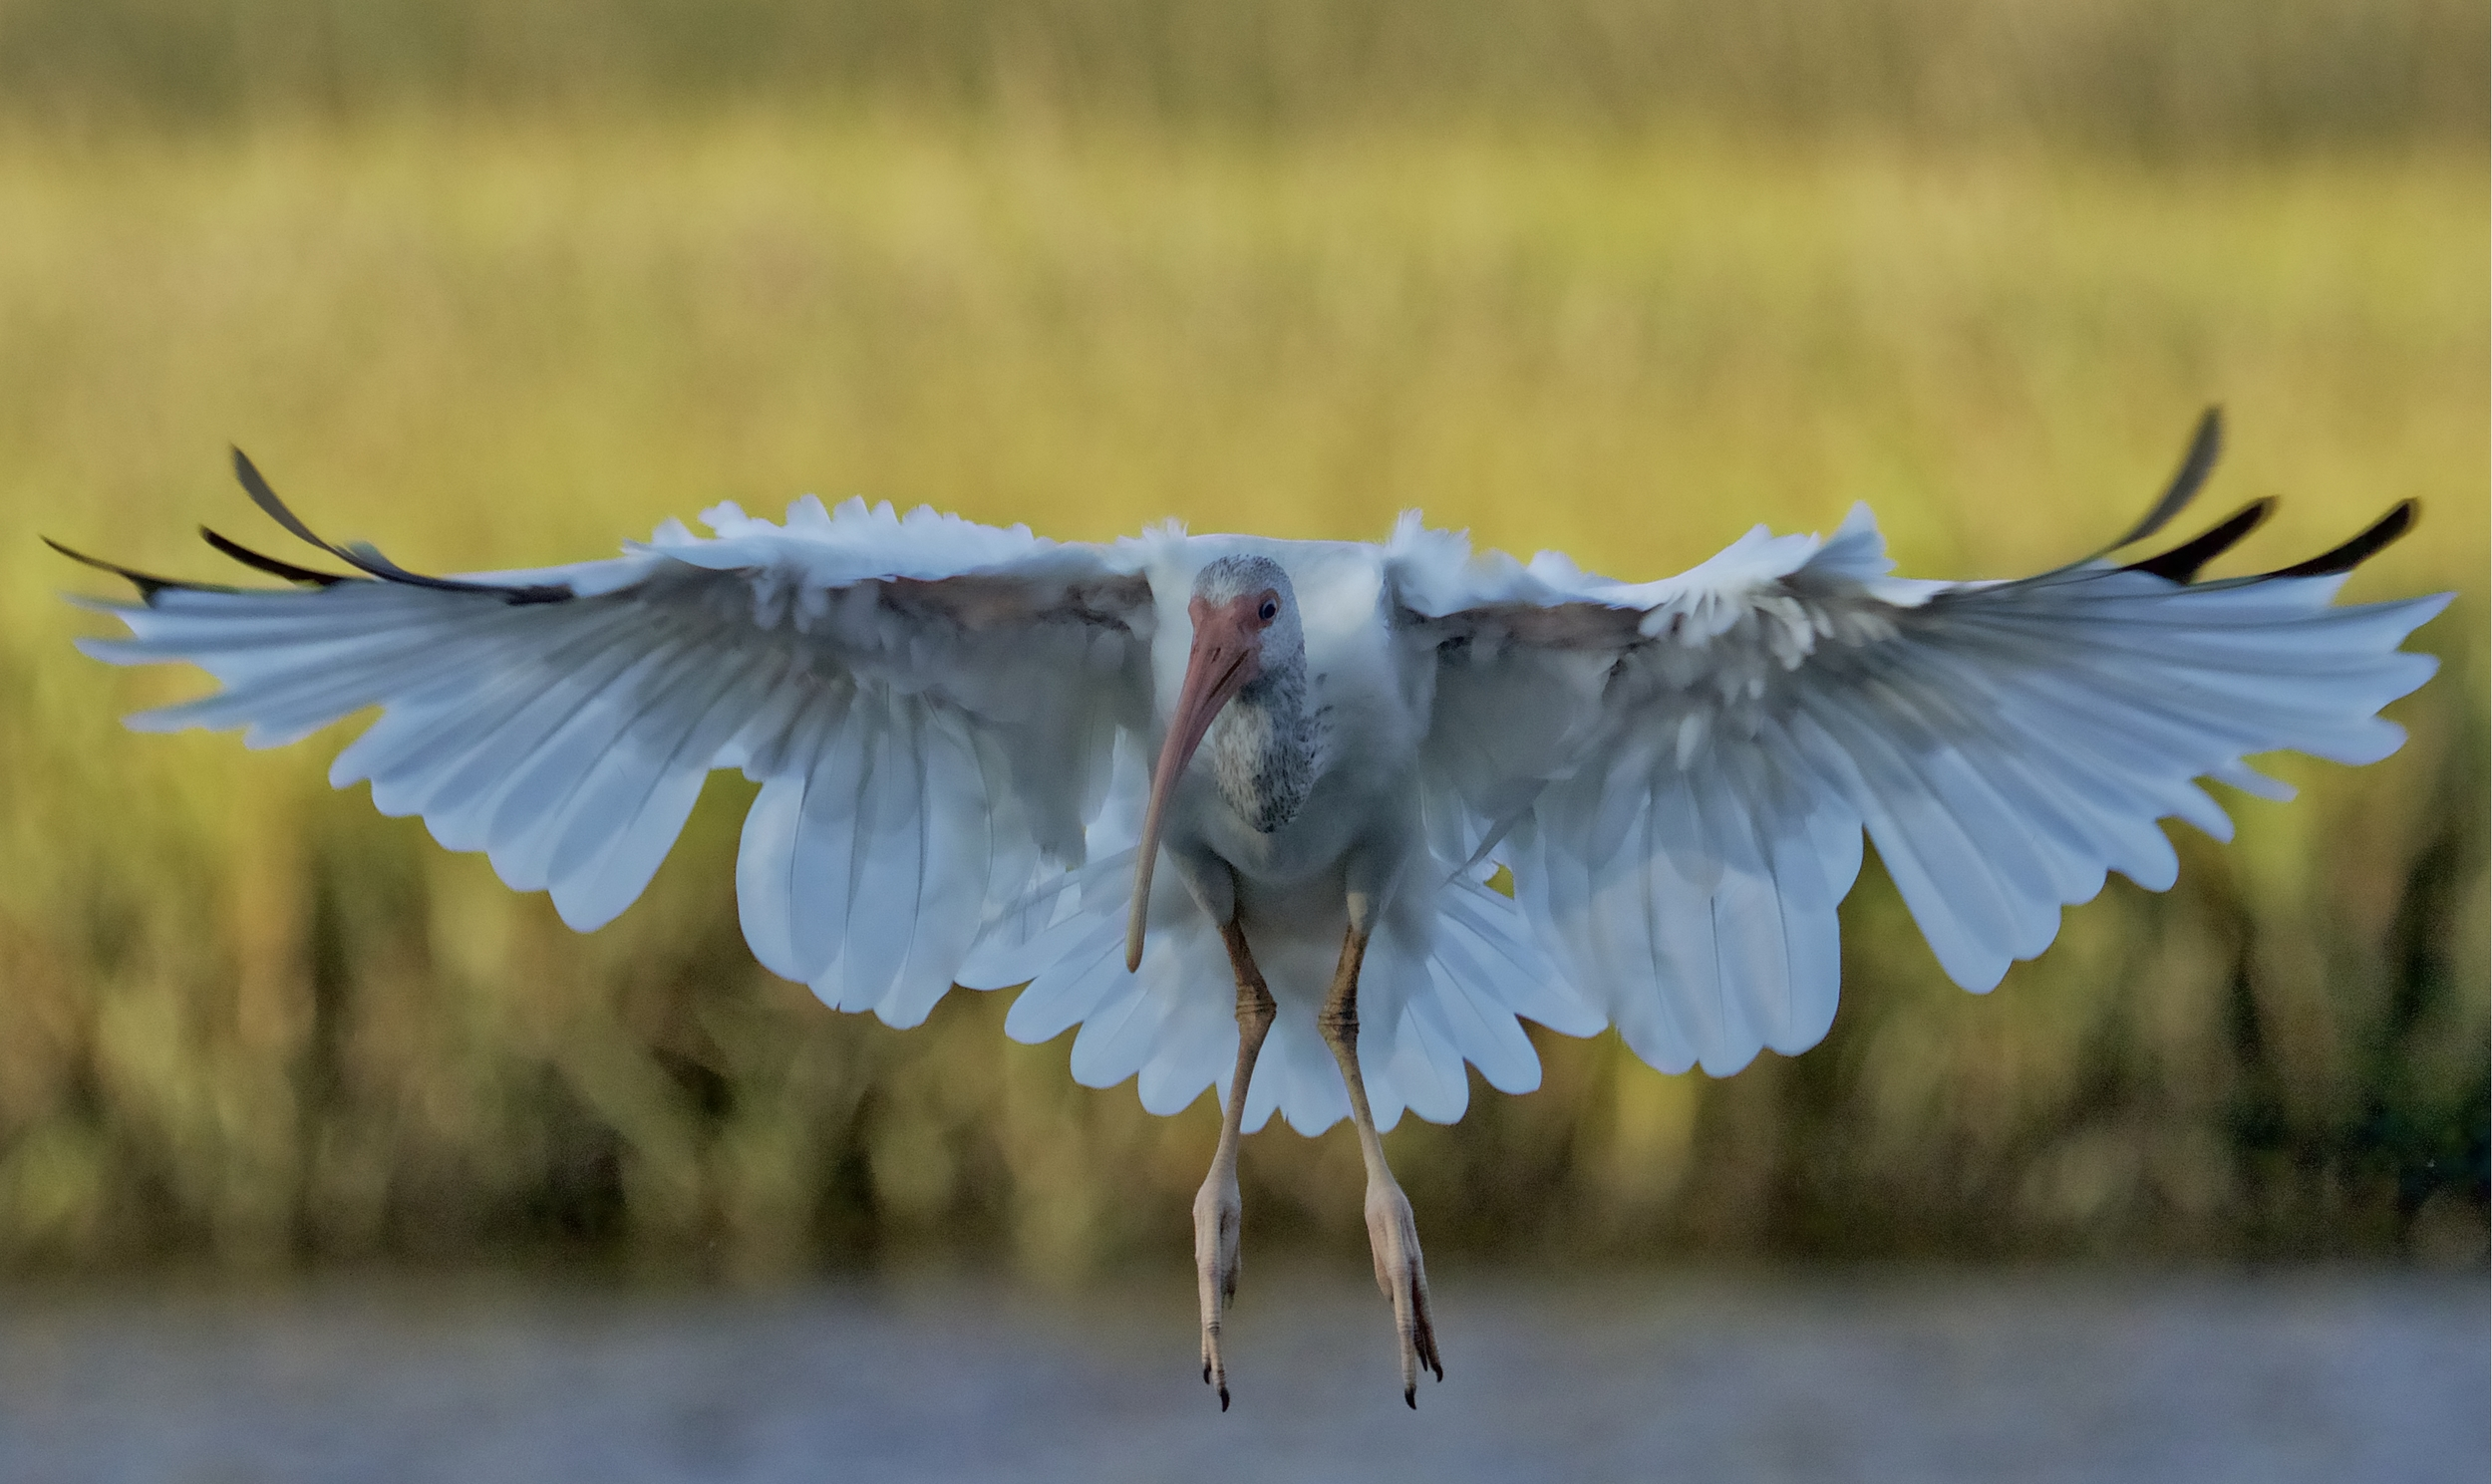 The Ibis flares its wings and lands at my feet, unafraid and at ease.